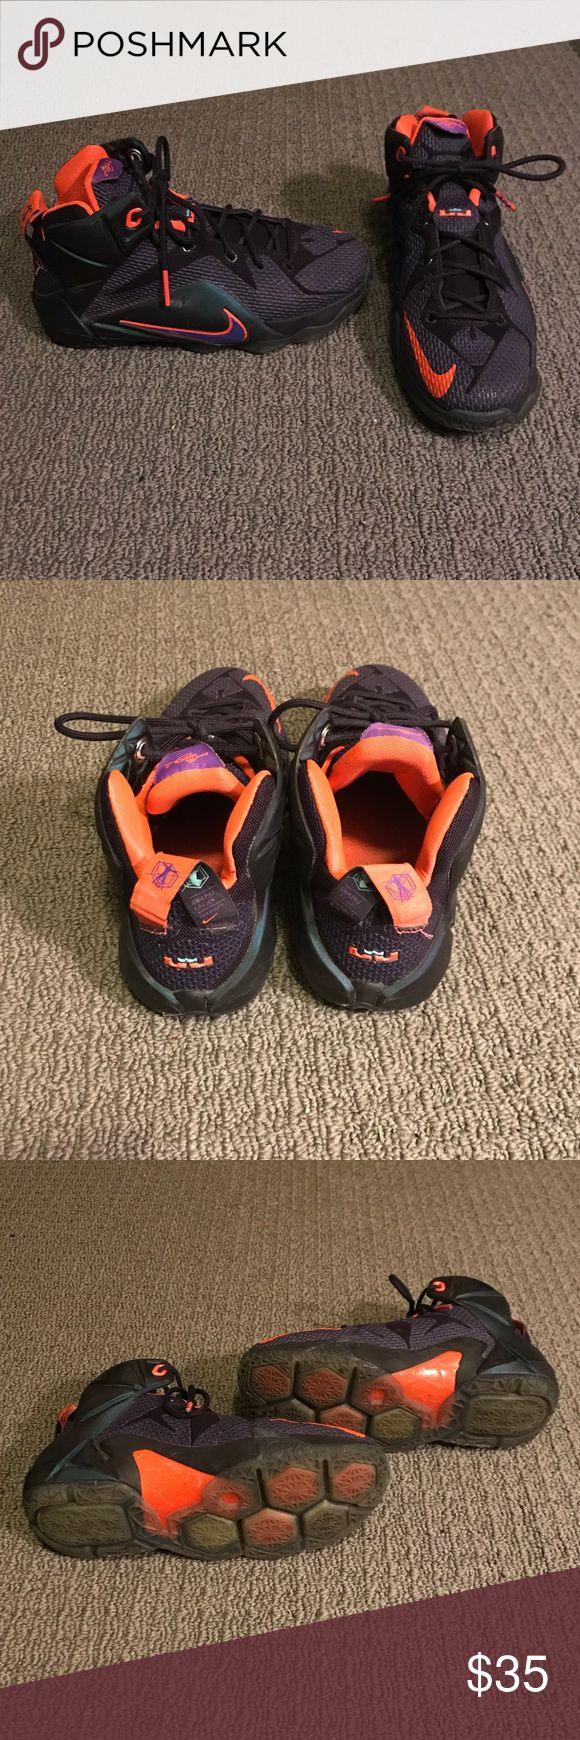 Kids Lebron 9 Shoes Lightly worn. In good condition. Lebron James Shoes Sneakers